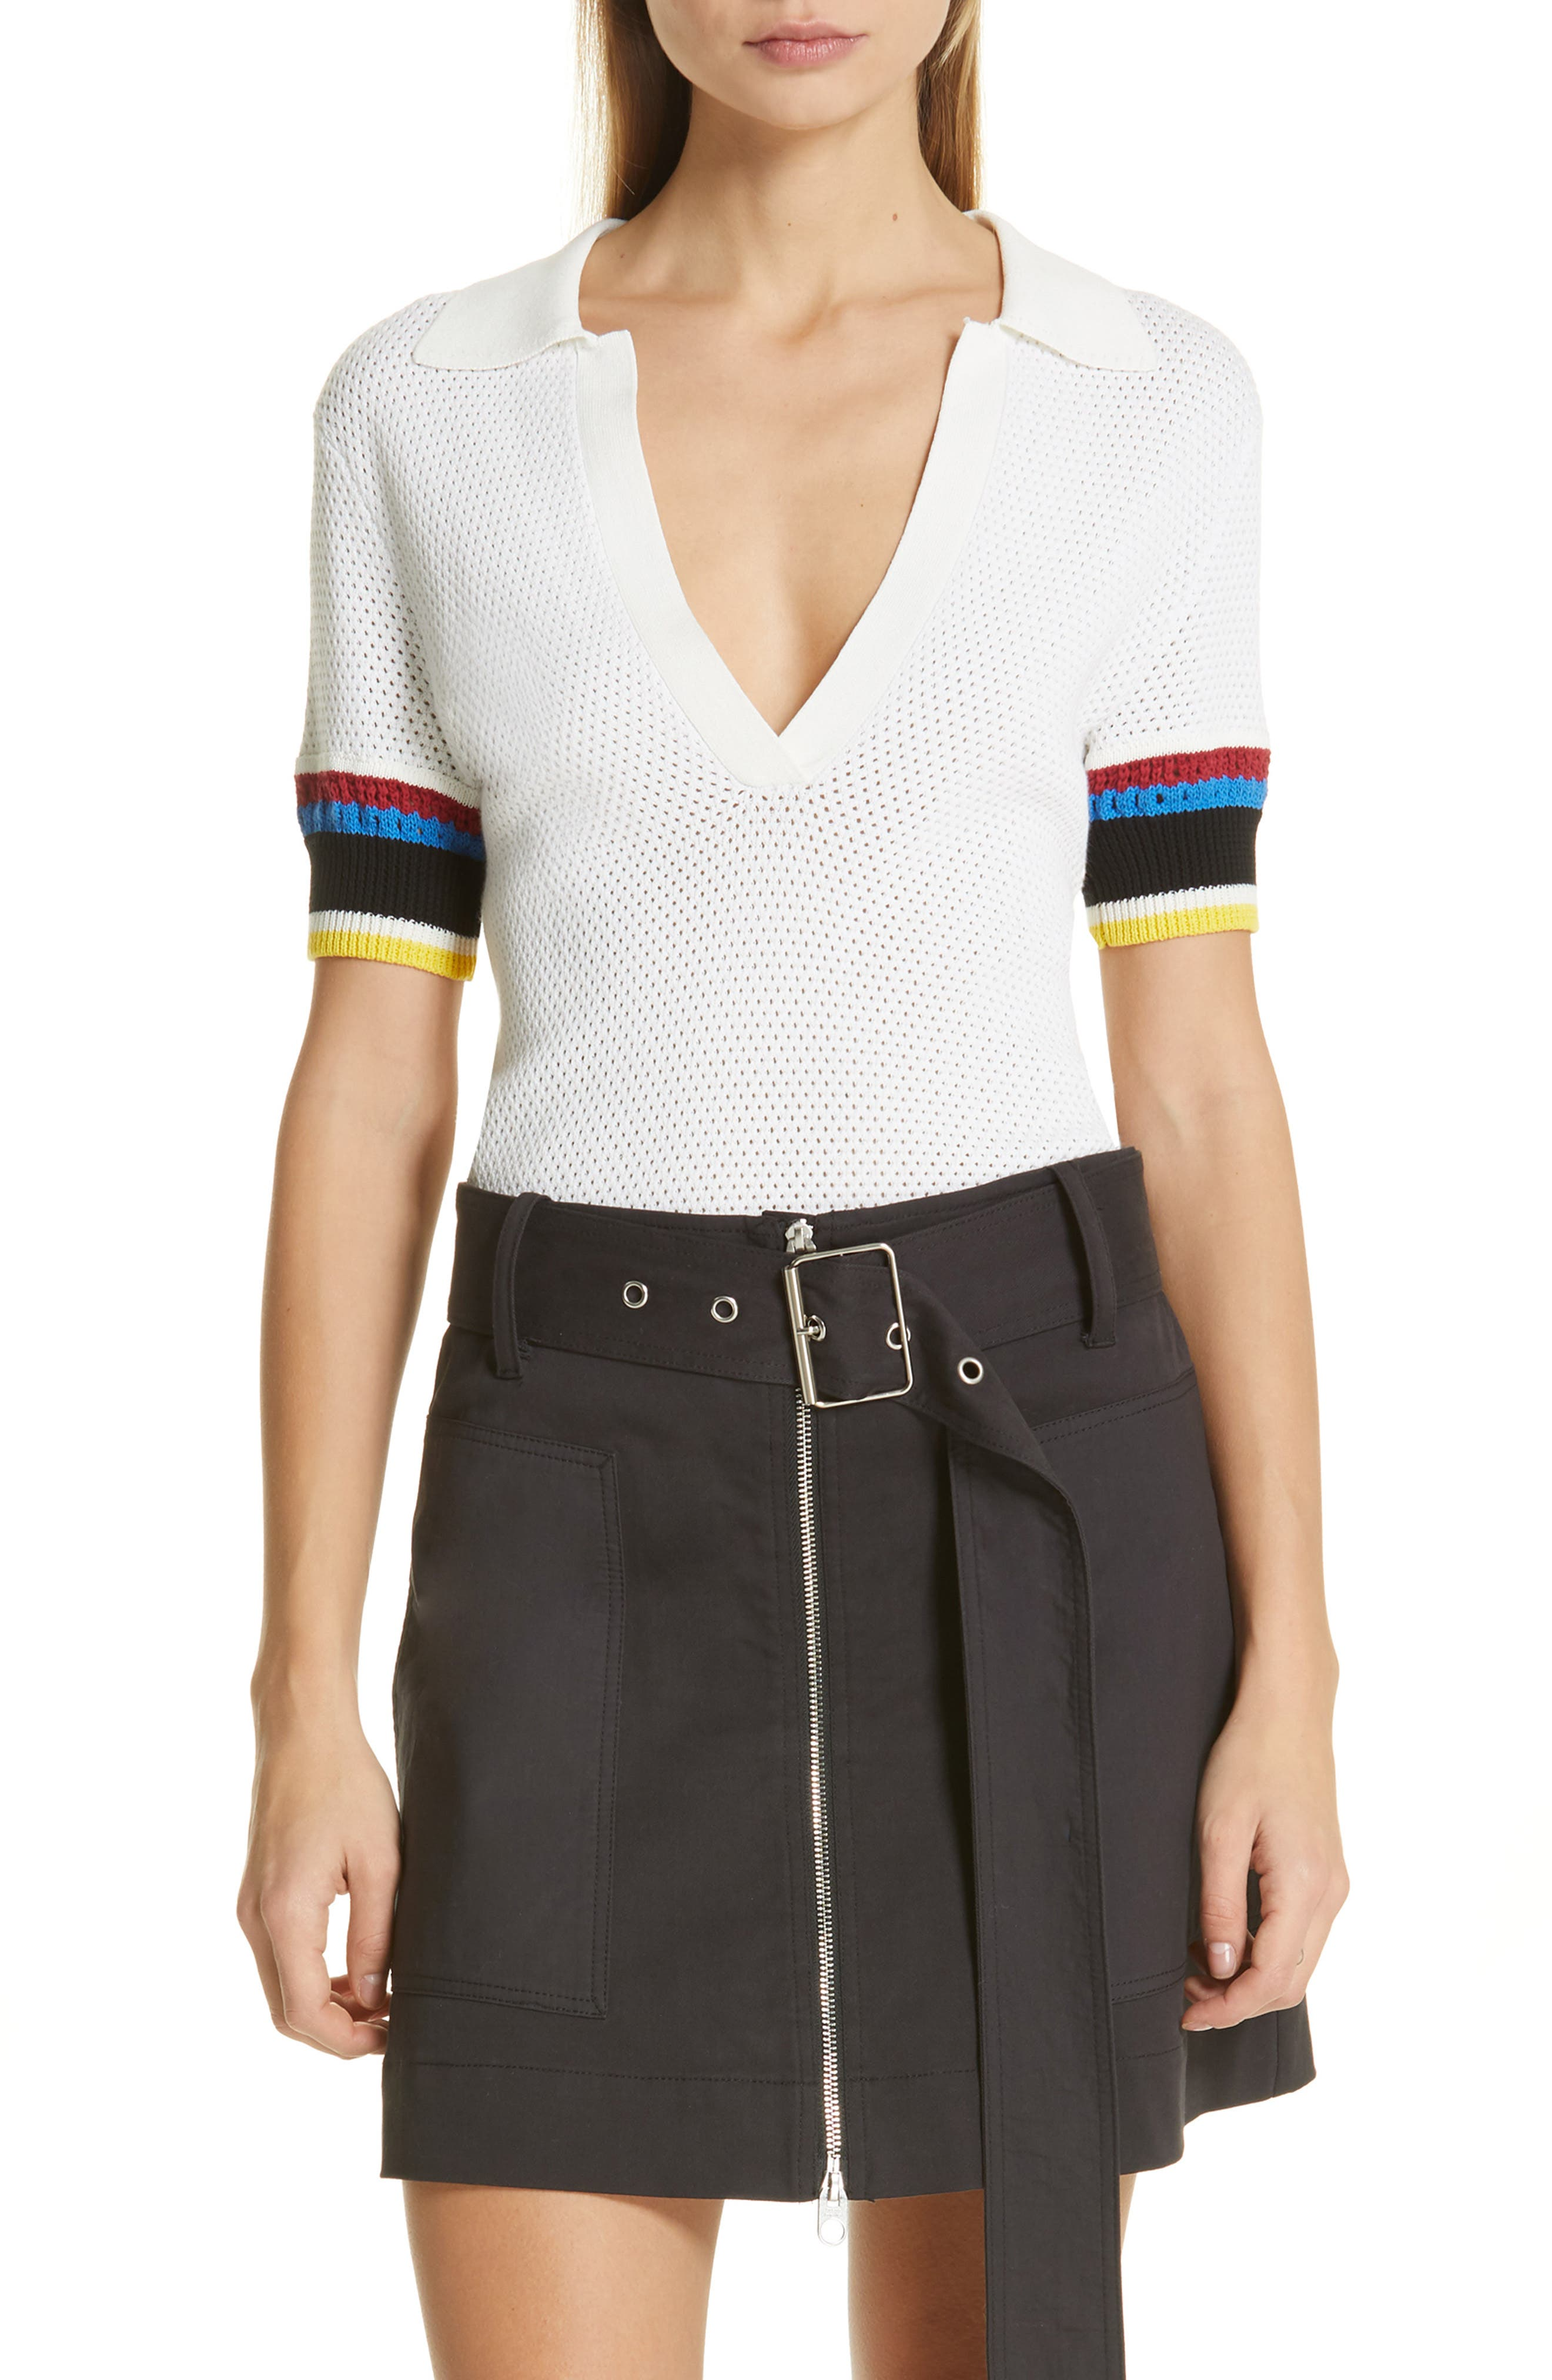 PROENZA SCHOULER, PSWL Stripe Sleeve Polo Top, Main thumbnail 1, color, OFF WHITE